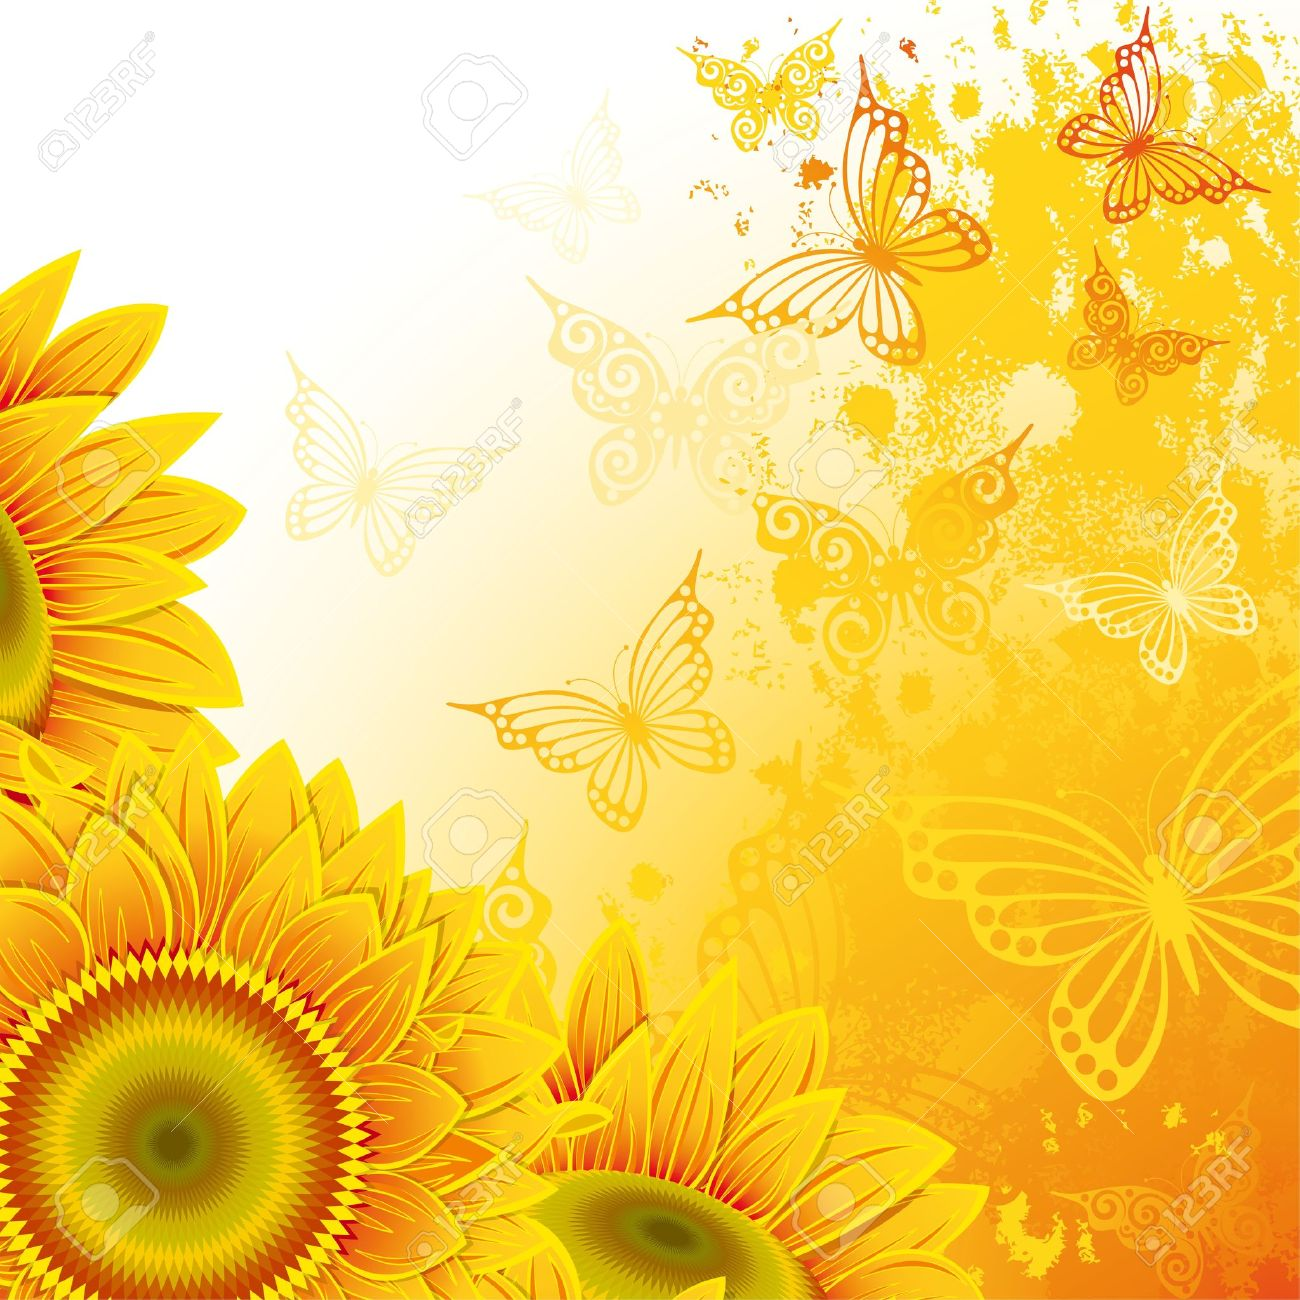 Orange background with sunflowers and butterflies - 9828098